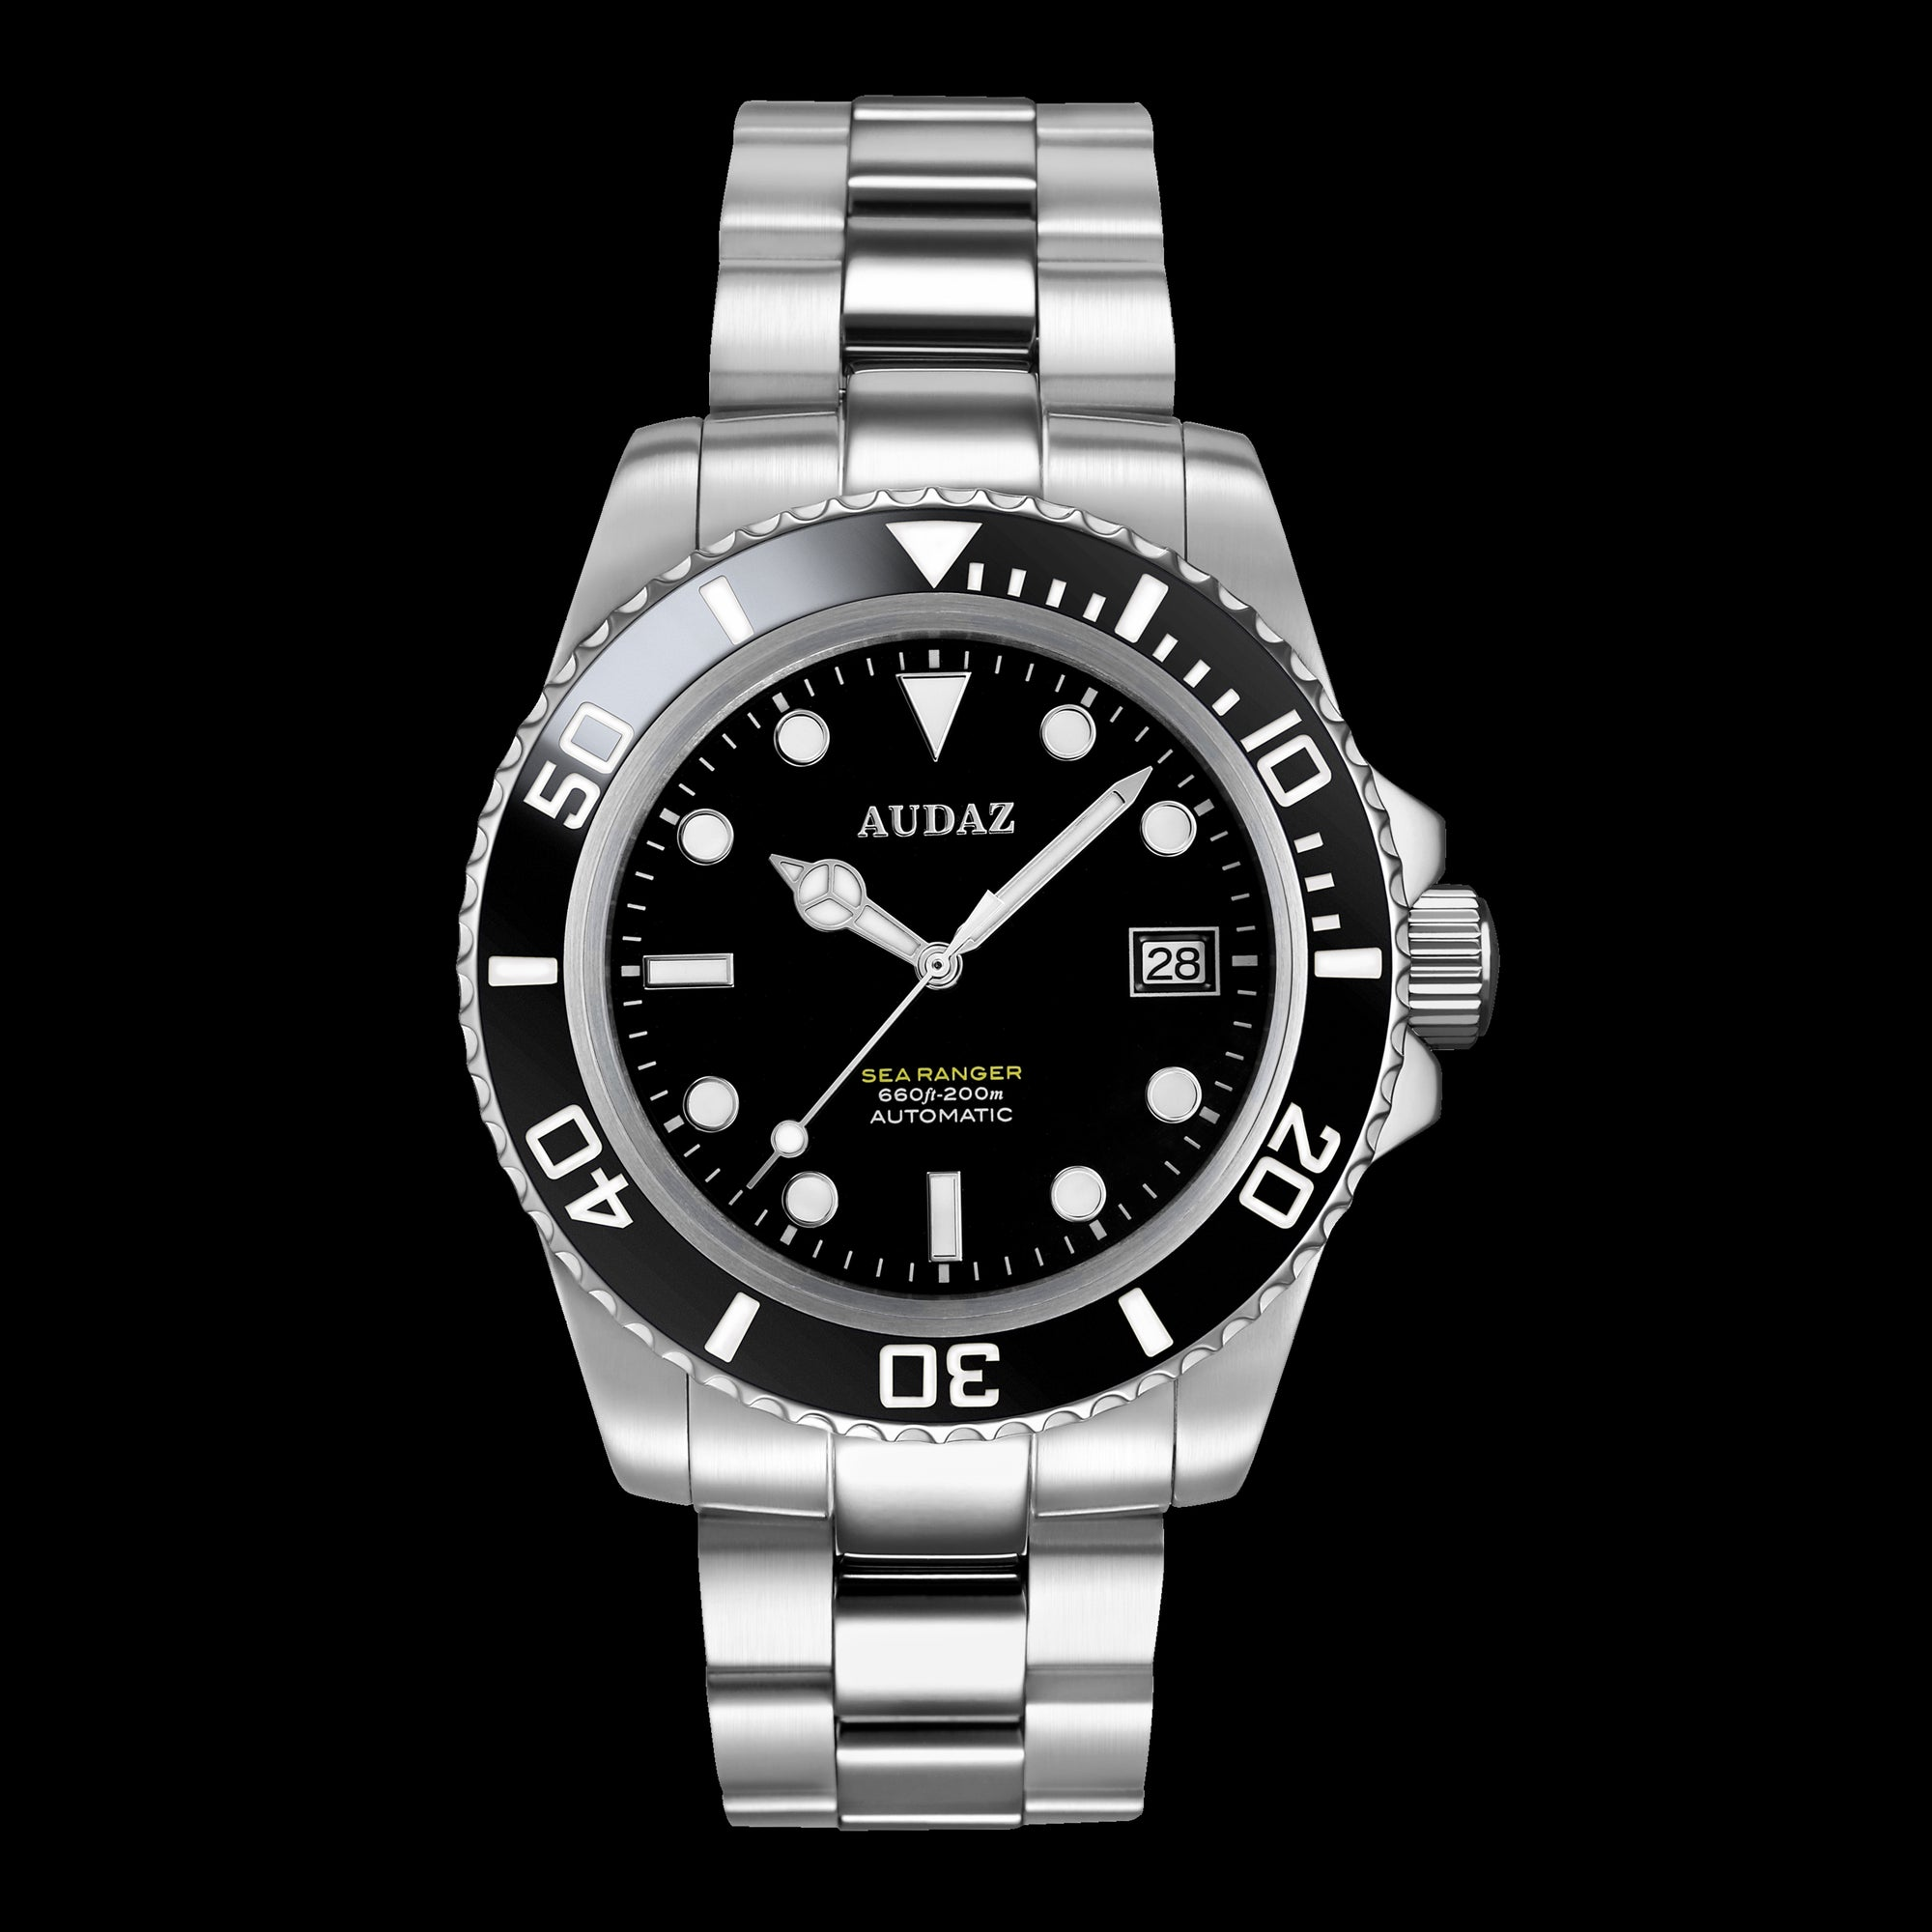 SEA RANGER Watches ADZ-2050-01